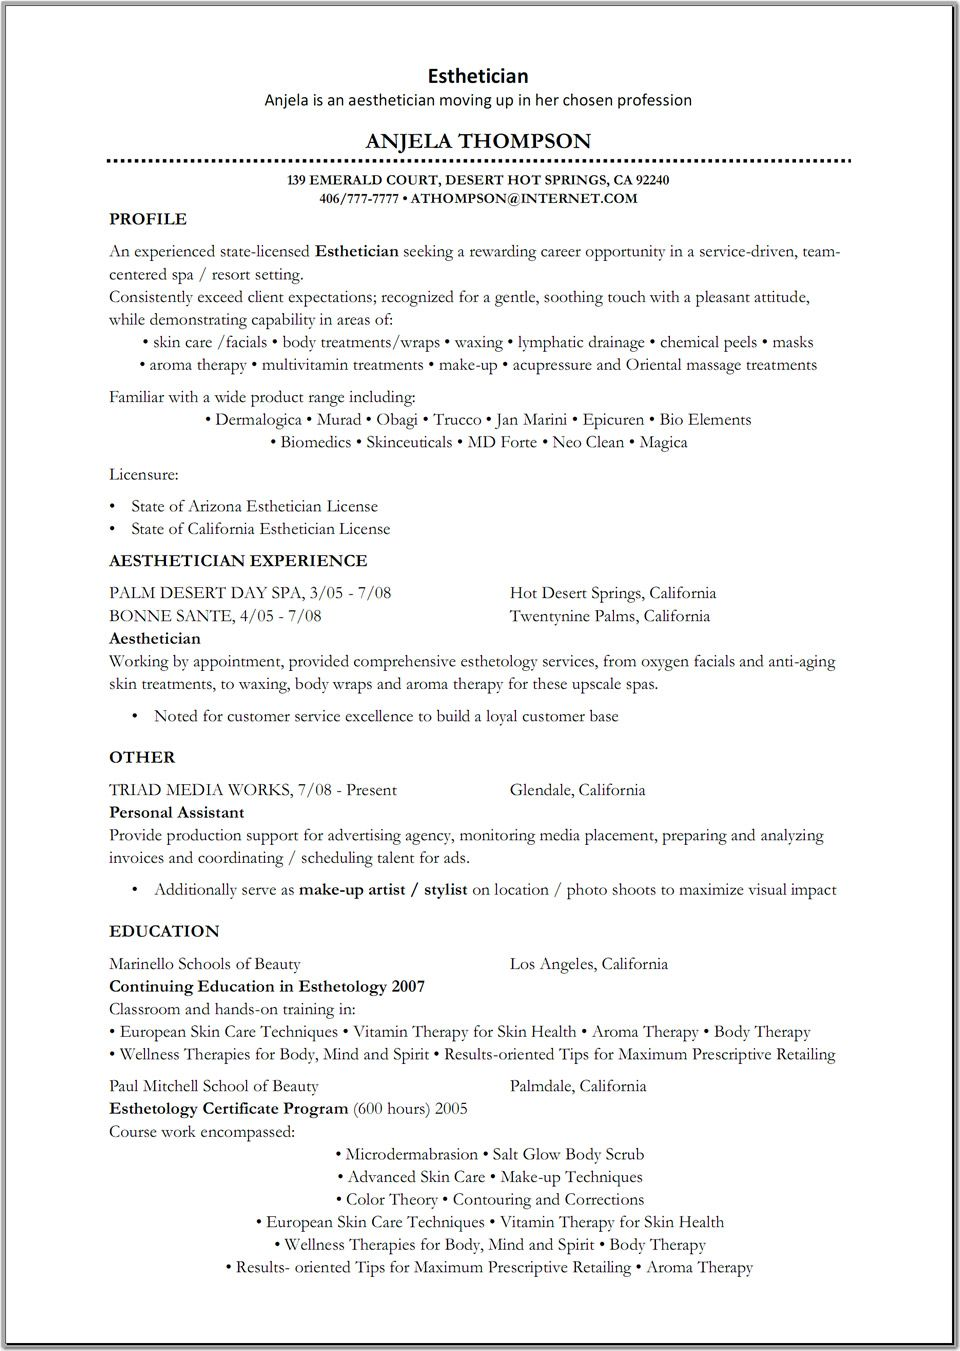 esthetician resume ideas template new graduate objective for with software skills Resume New Graduate Esthetician Resume